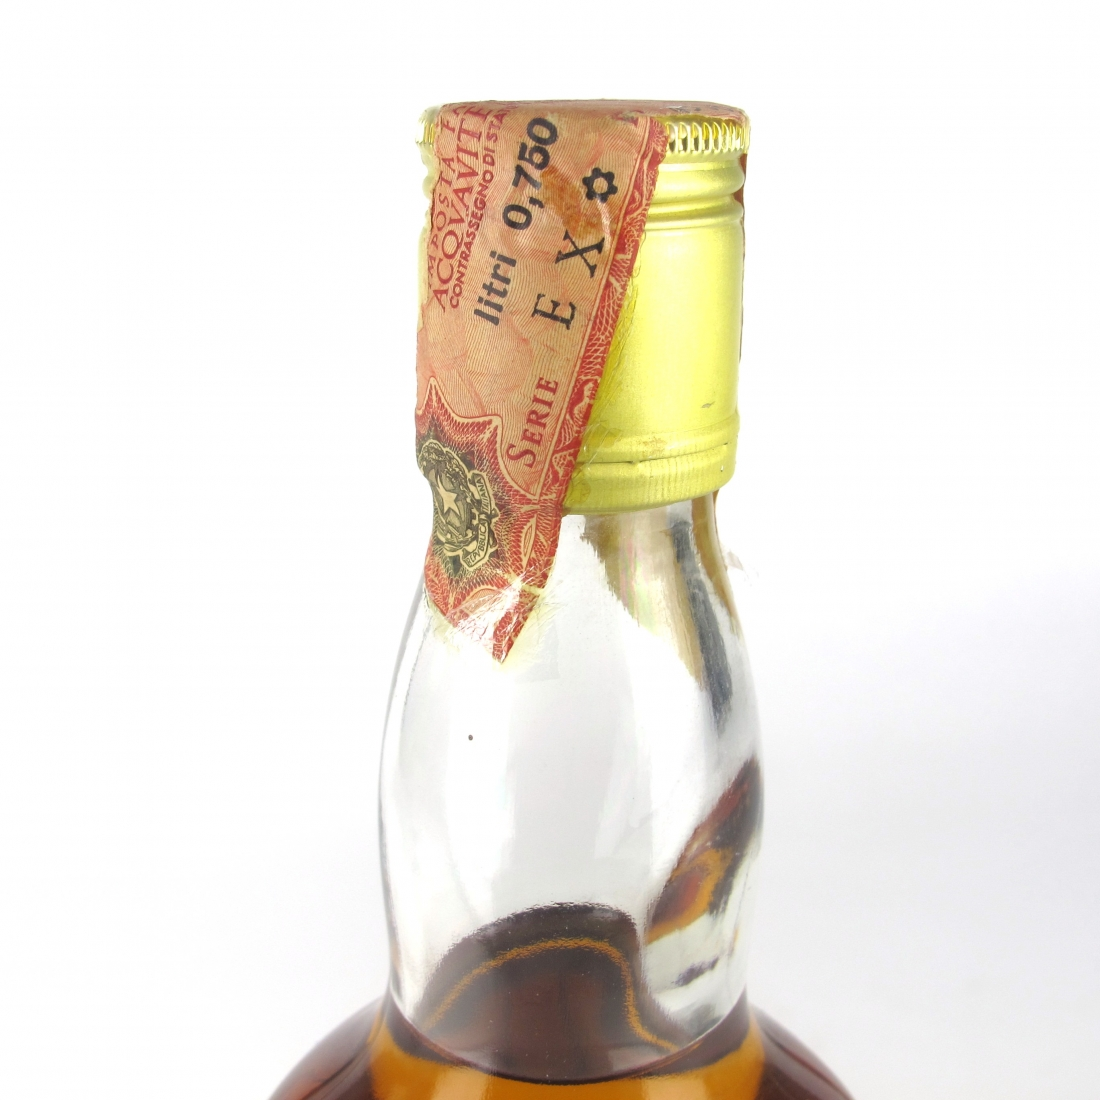 Benriach 1969 Gordon and MacPhail 12 Year Old / Pinerolo Import